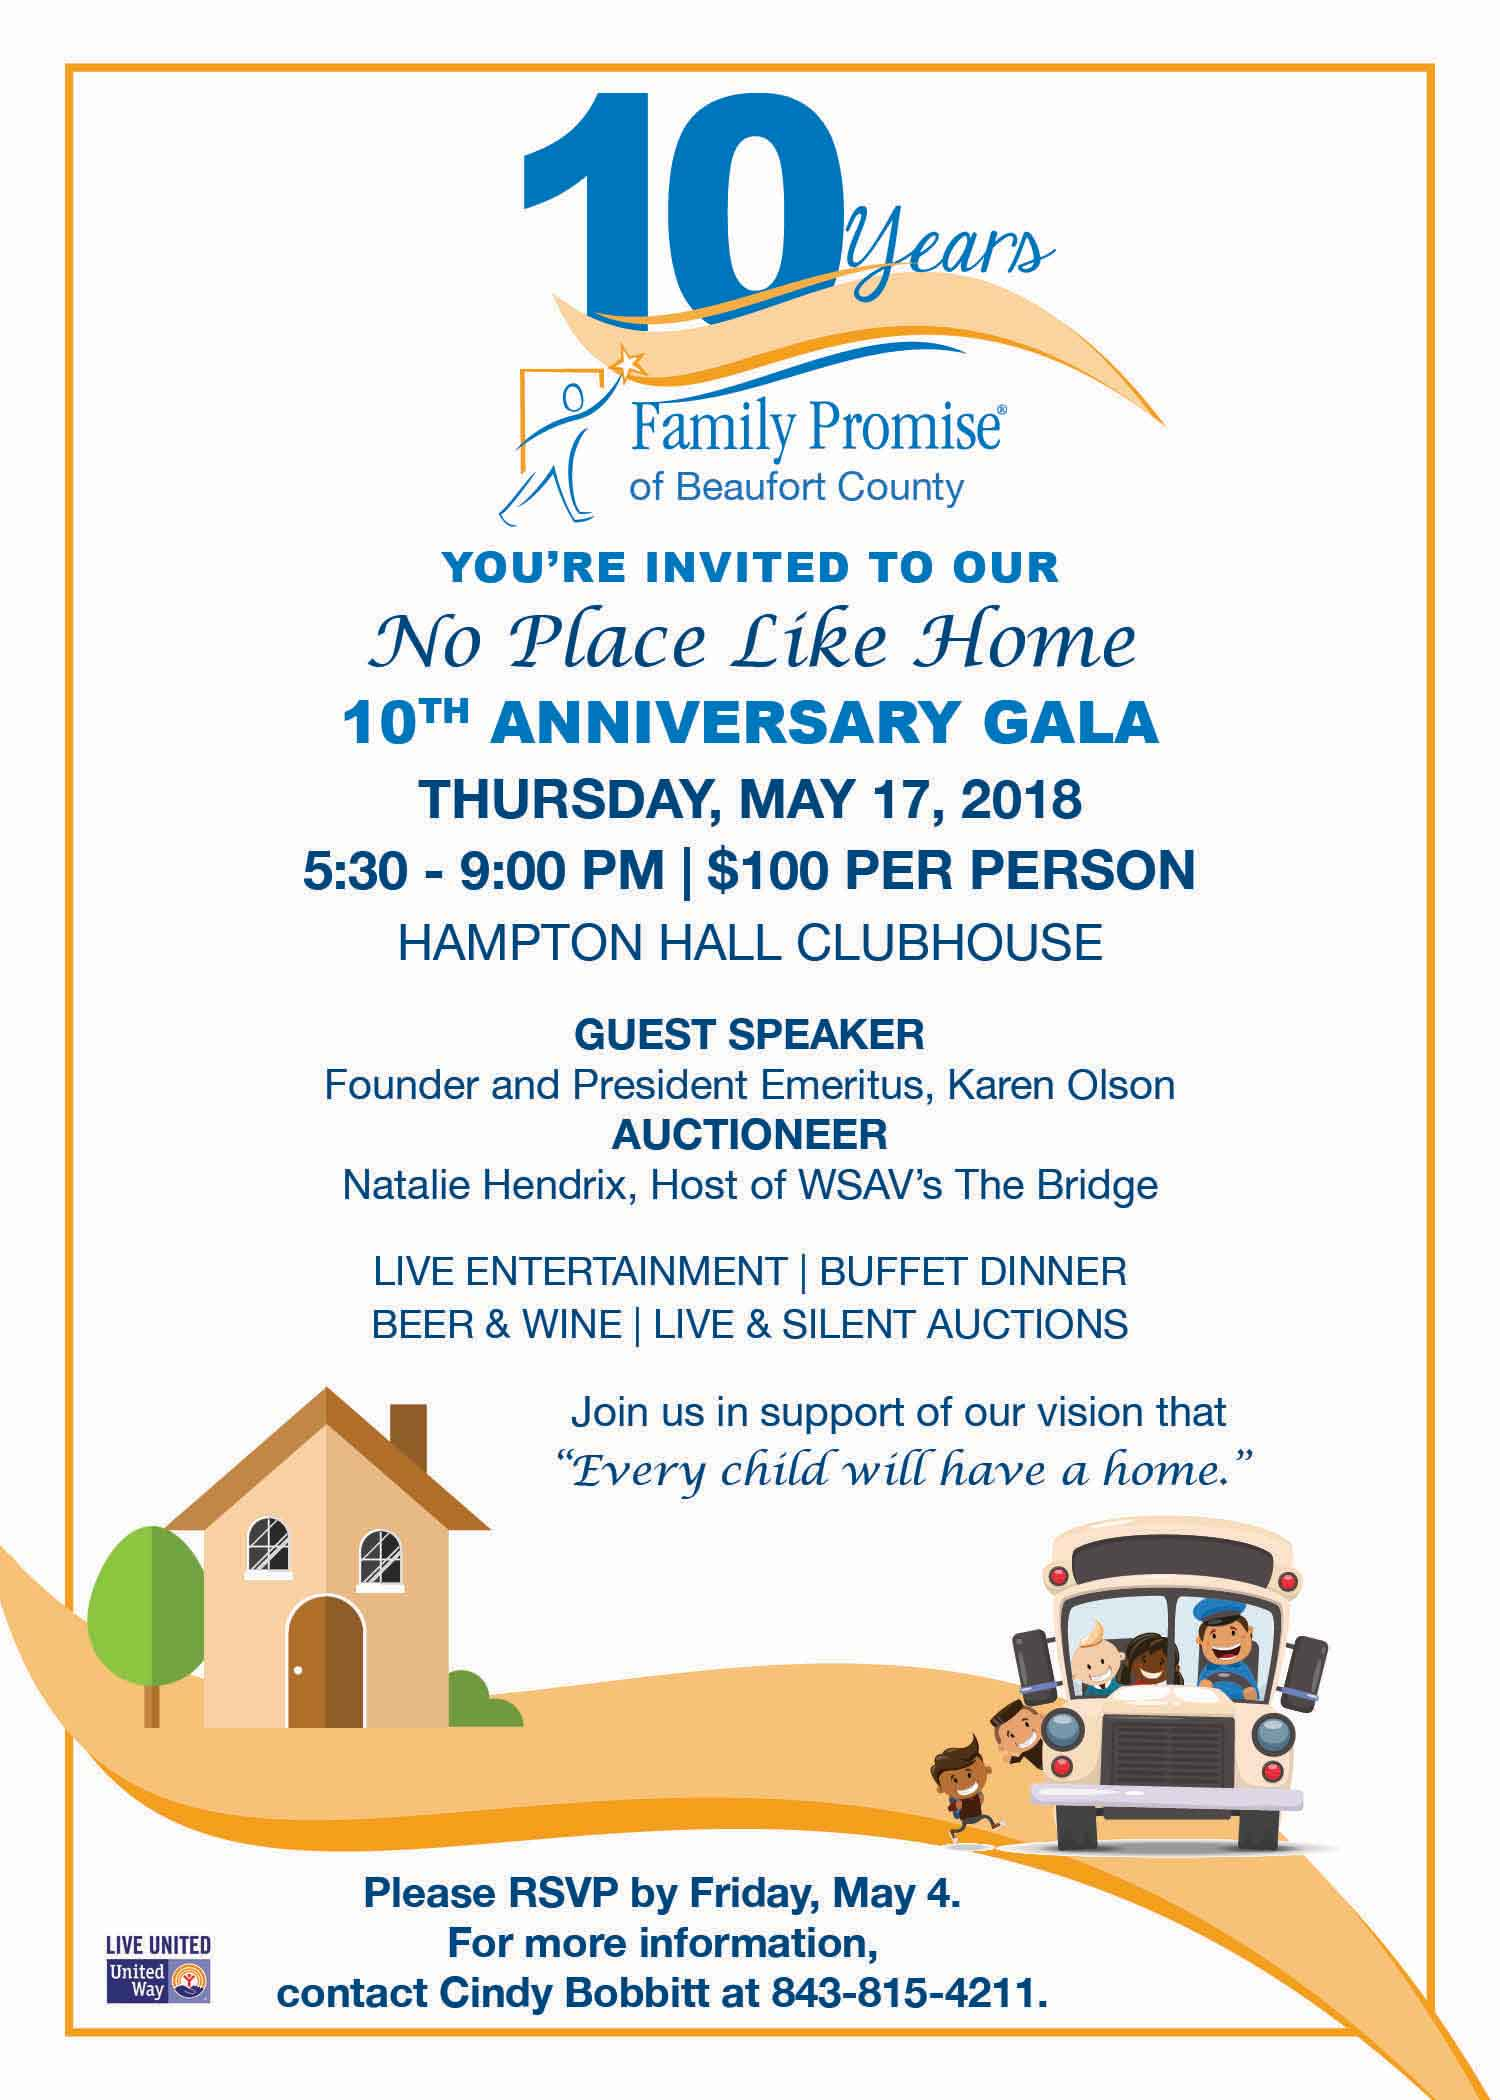 No Place Like Home 10th Anniversary Gala - Family Promise of